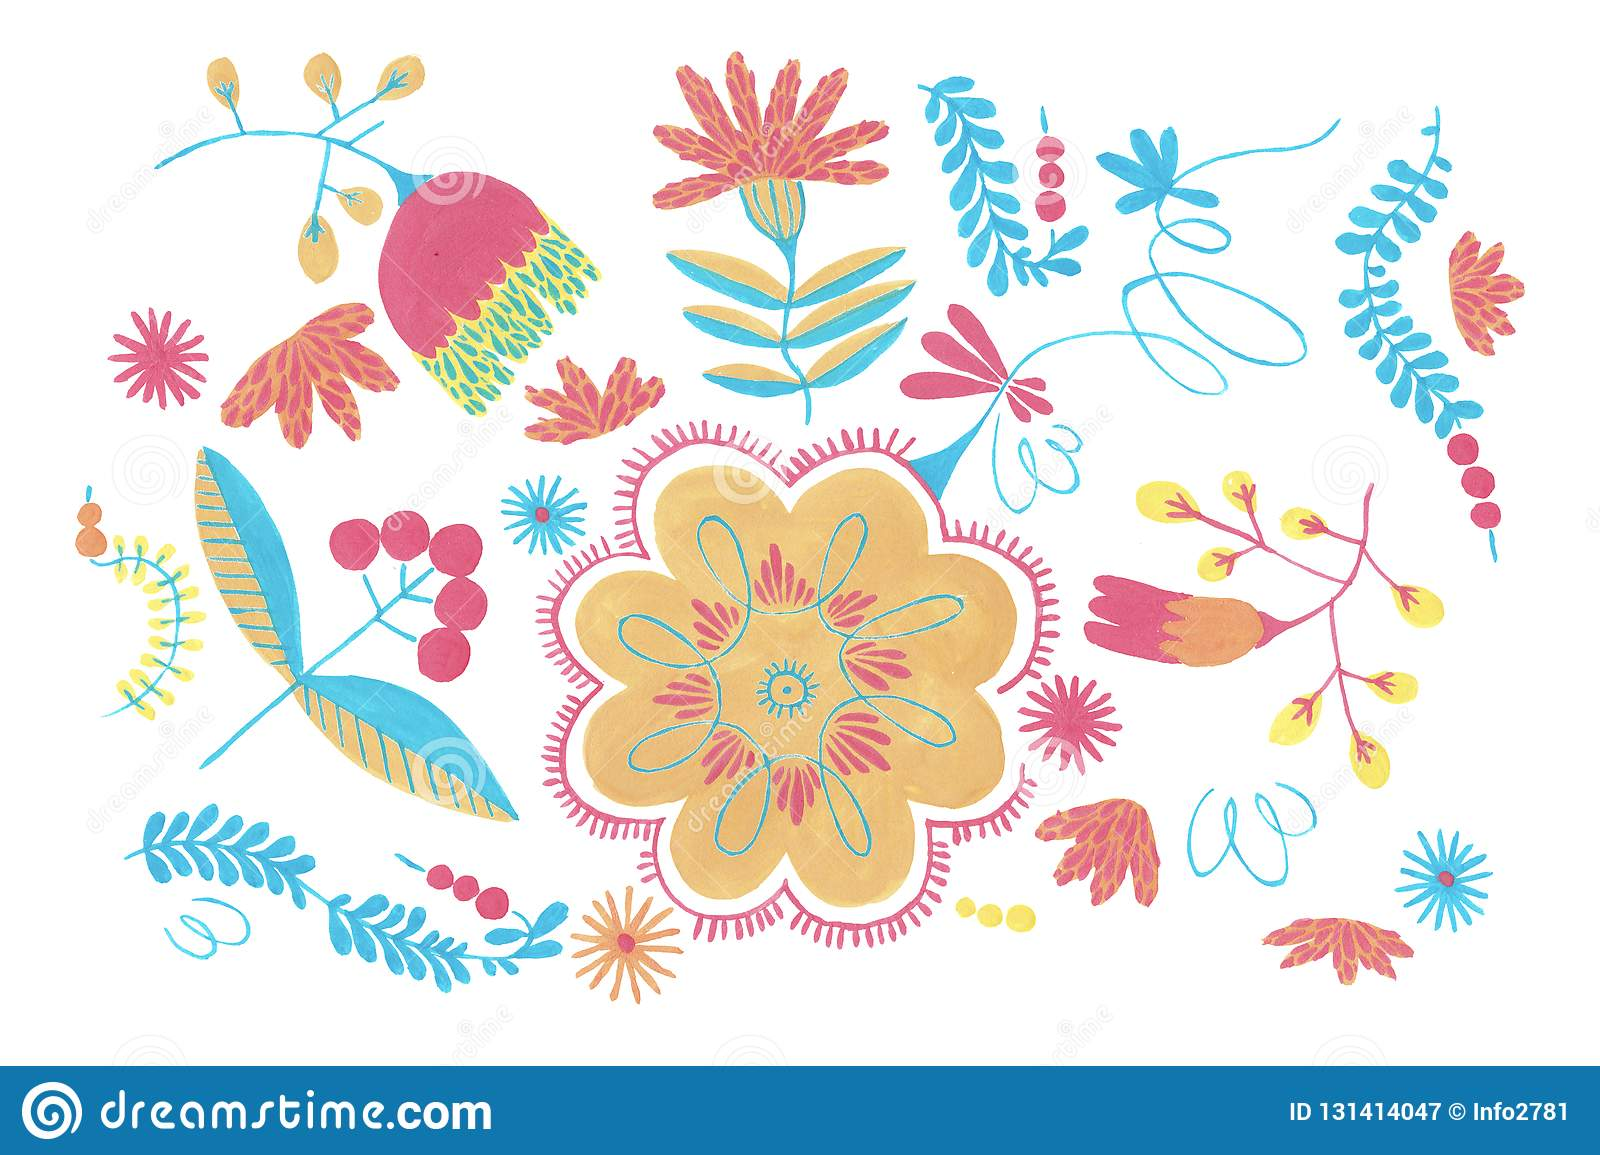 Polish herbal pattern with orange flowers decor, traditional Polish folk seamless Pattern with floral illustrations